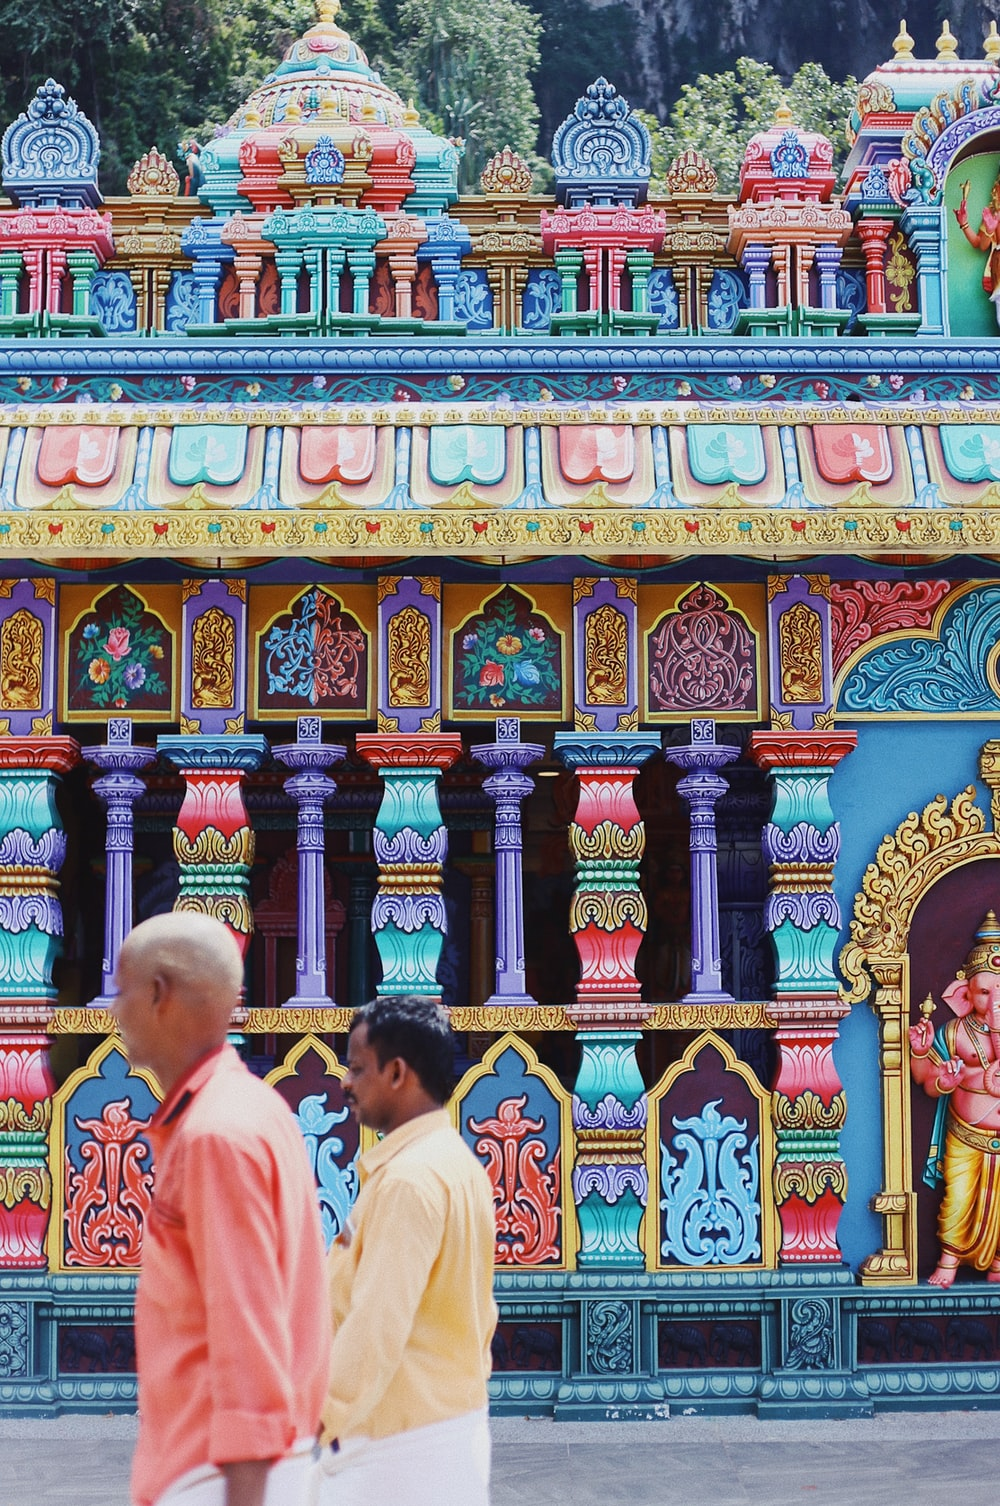 two men walking in front of multicolored building with Ganesha statue